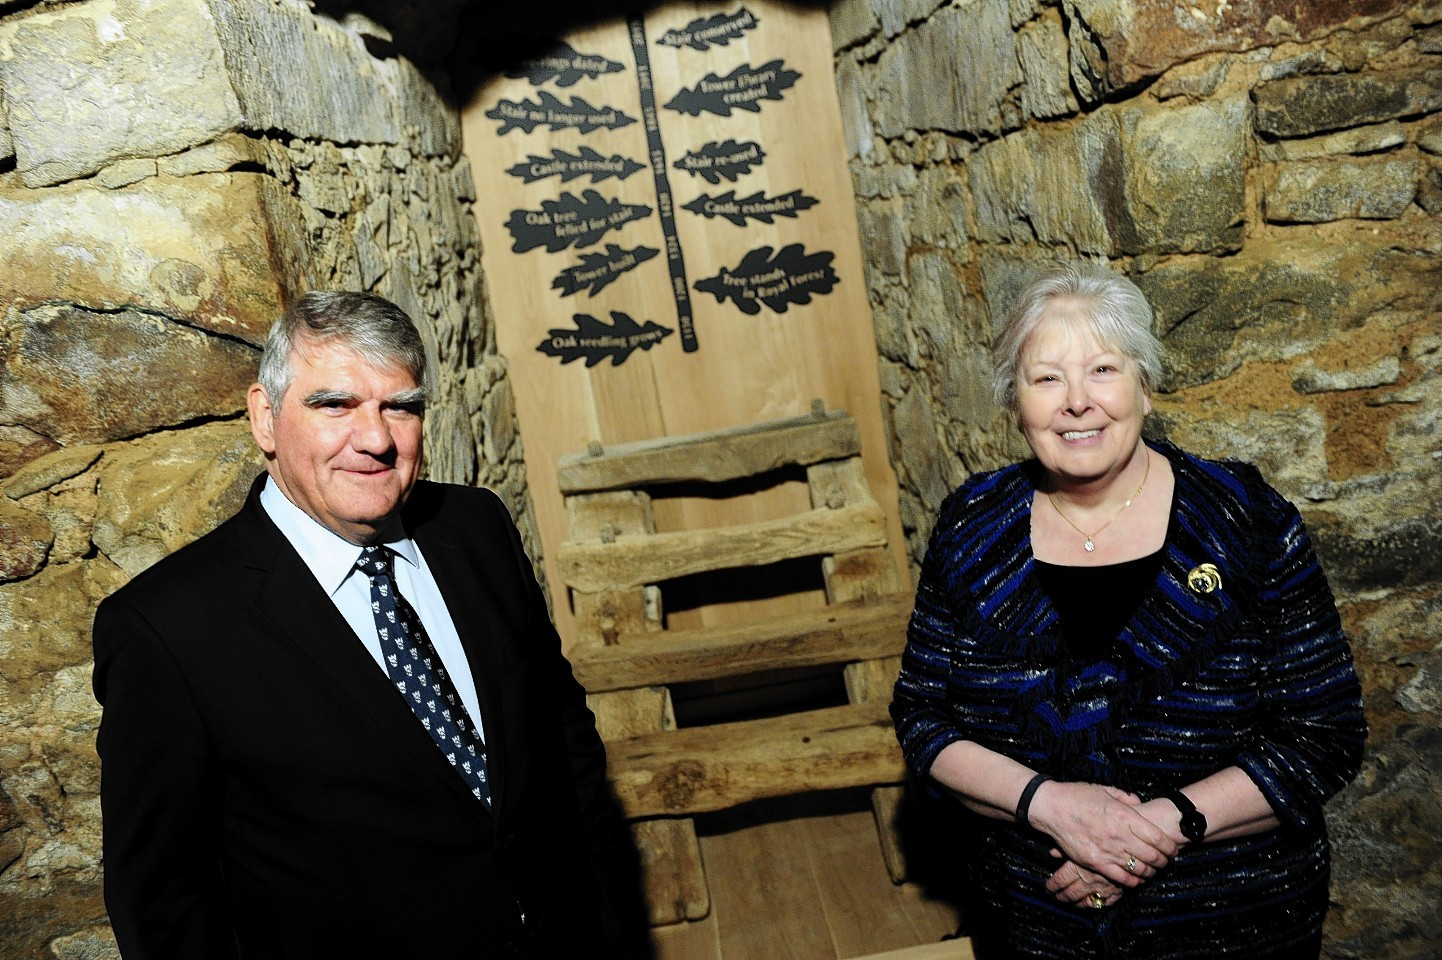 One of Scotland's oldest surviving wooden stairs (from the 1400's) has been conserved and placed on display at Drum Castle, Aberdeenshire.n      Pictured - Chairman of the National Trust for Scotland Sir Moir Lockhead and Chair of the Trust's US Foundation Helen Sayles at the steps in the tower of Drum Castle.     Picture by Kami Thomson